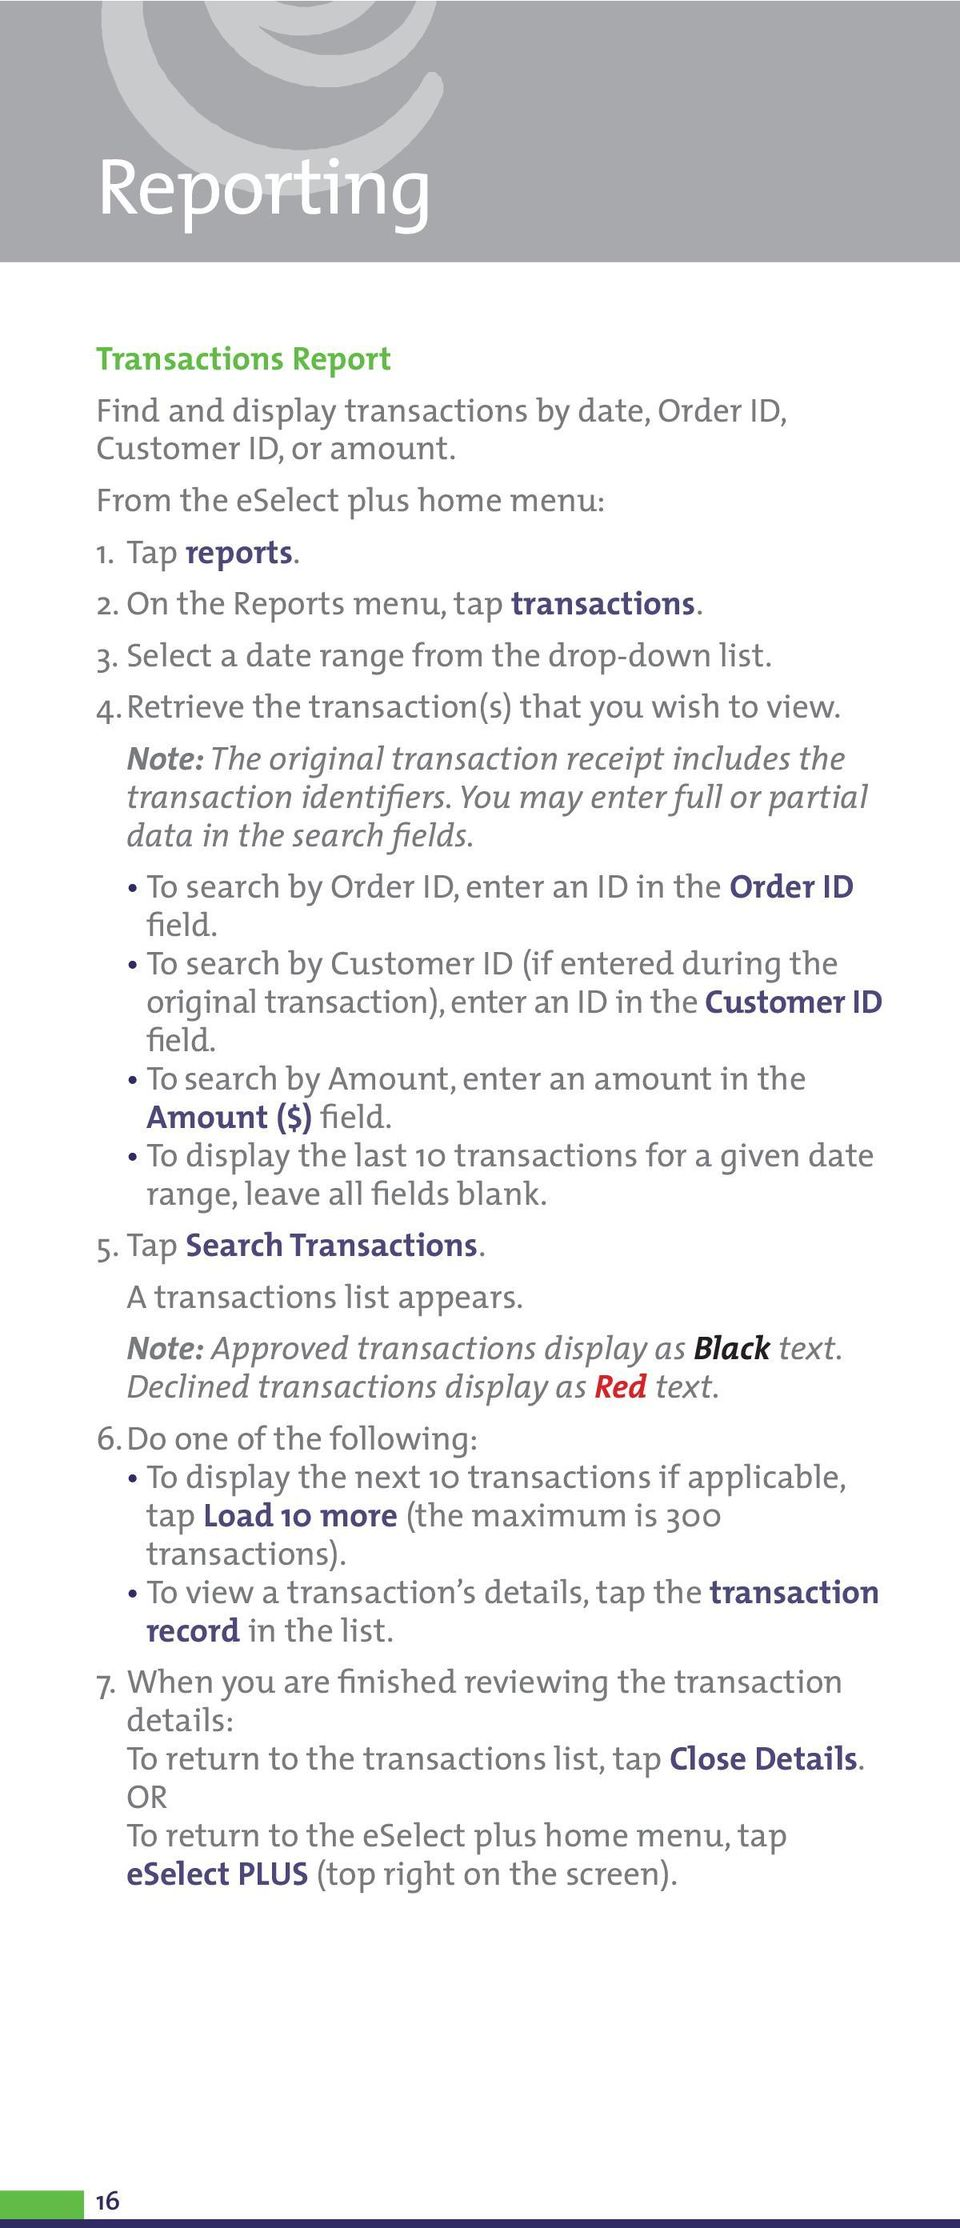 You may enter full or partial data in the search fields. To search by Order ID, enter an ID in the Order ID field.